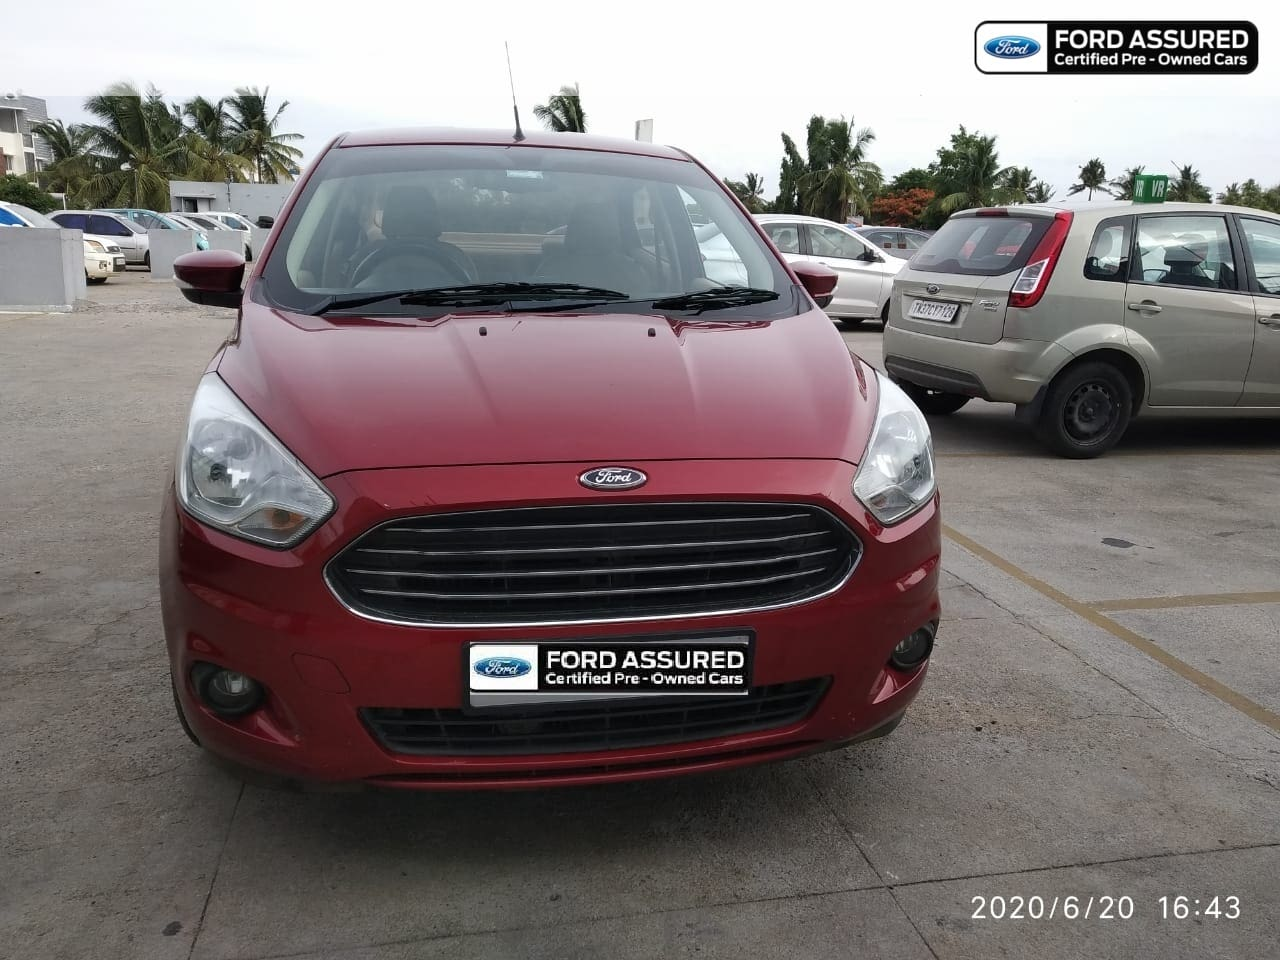 Ford Aspire Titanium Plus Diesel